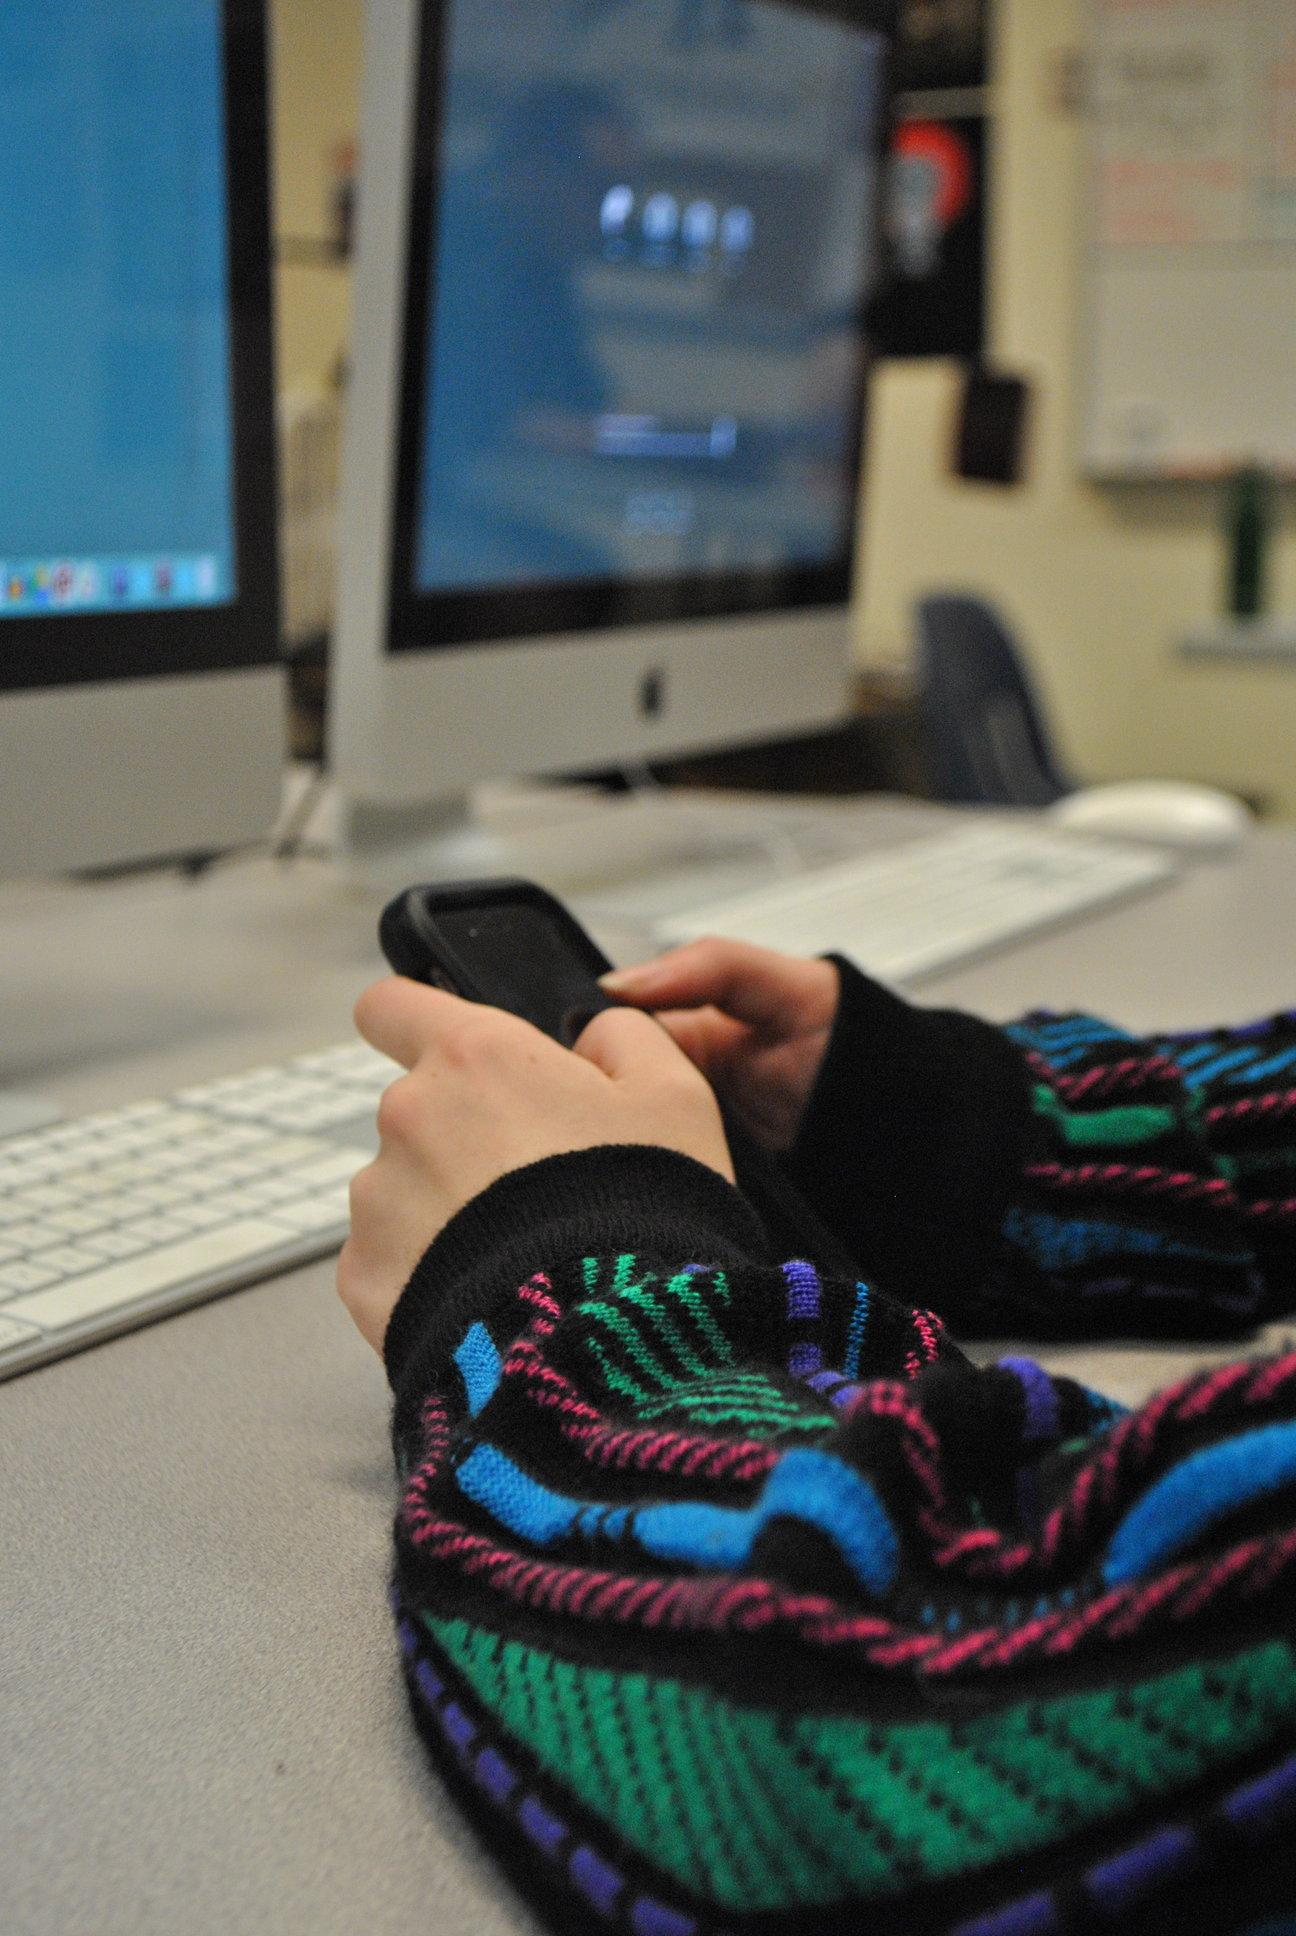 Students find it hard to pull themselves away from their phones